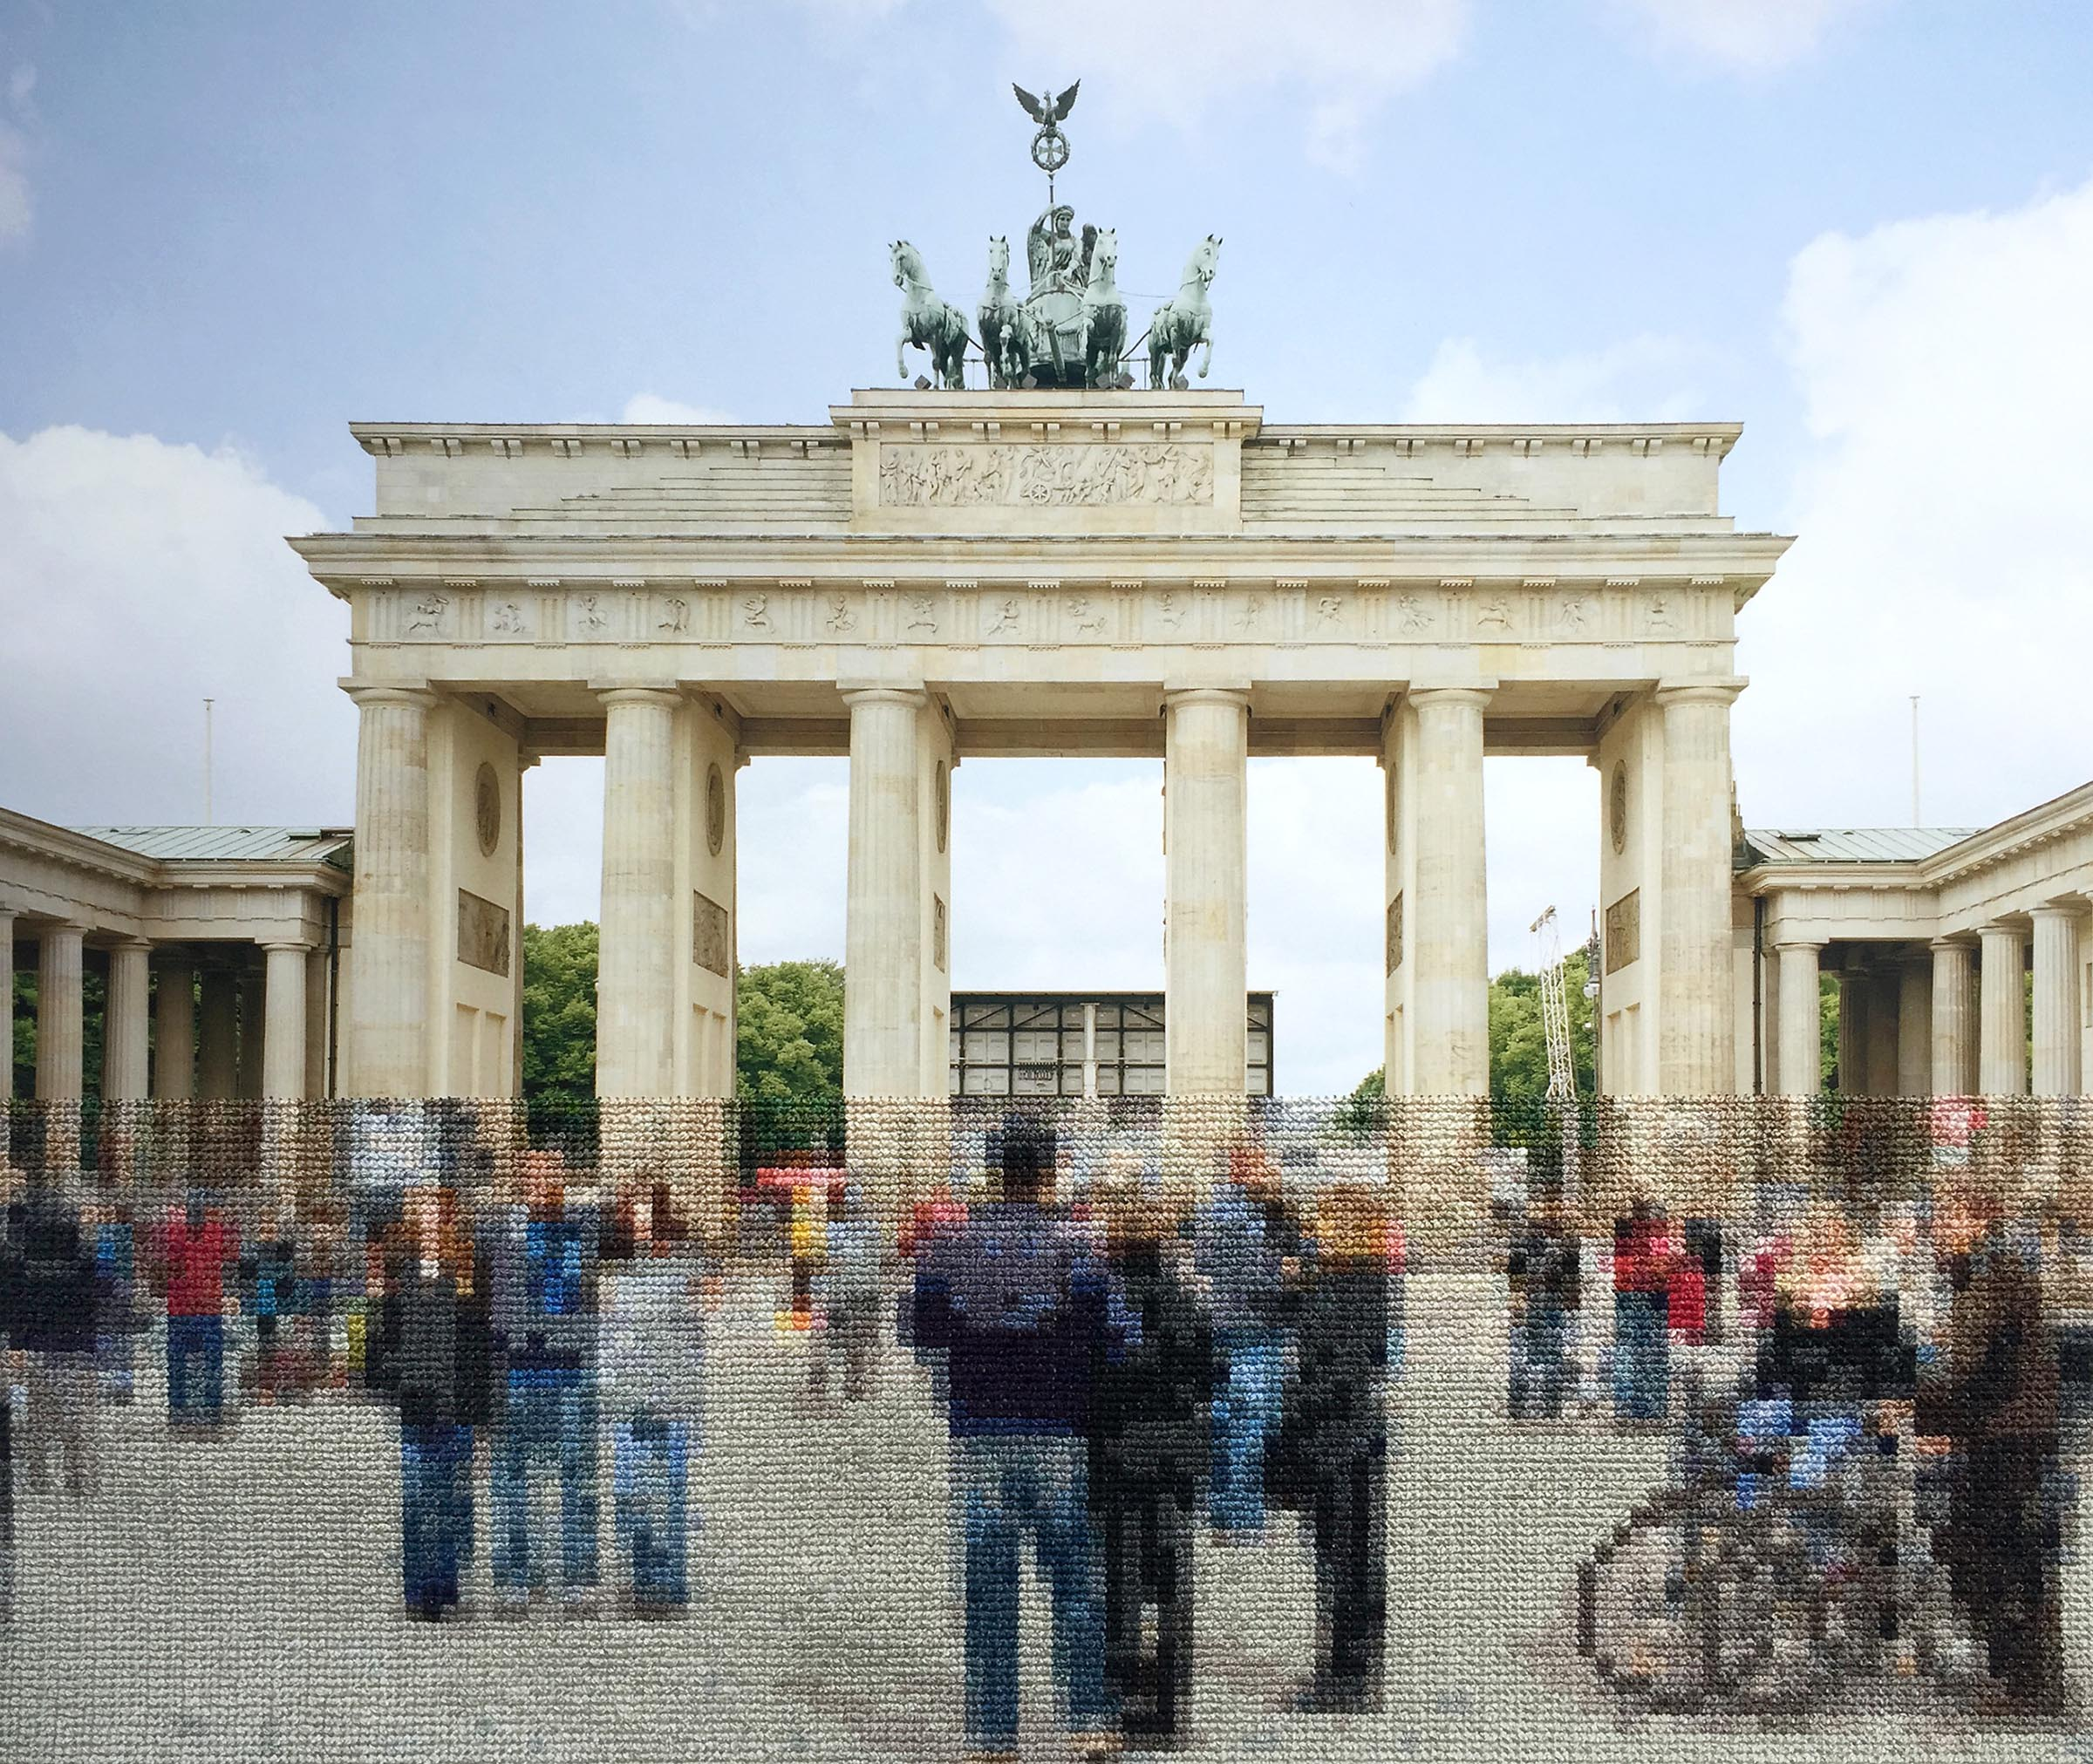 Diane Meyer , Brandenburg Gate, Hand Sewn ARchival Ink Jet Print, 14x16 inches, 2015